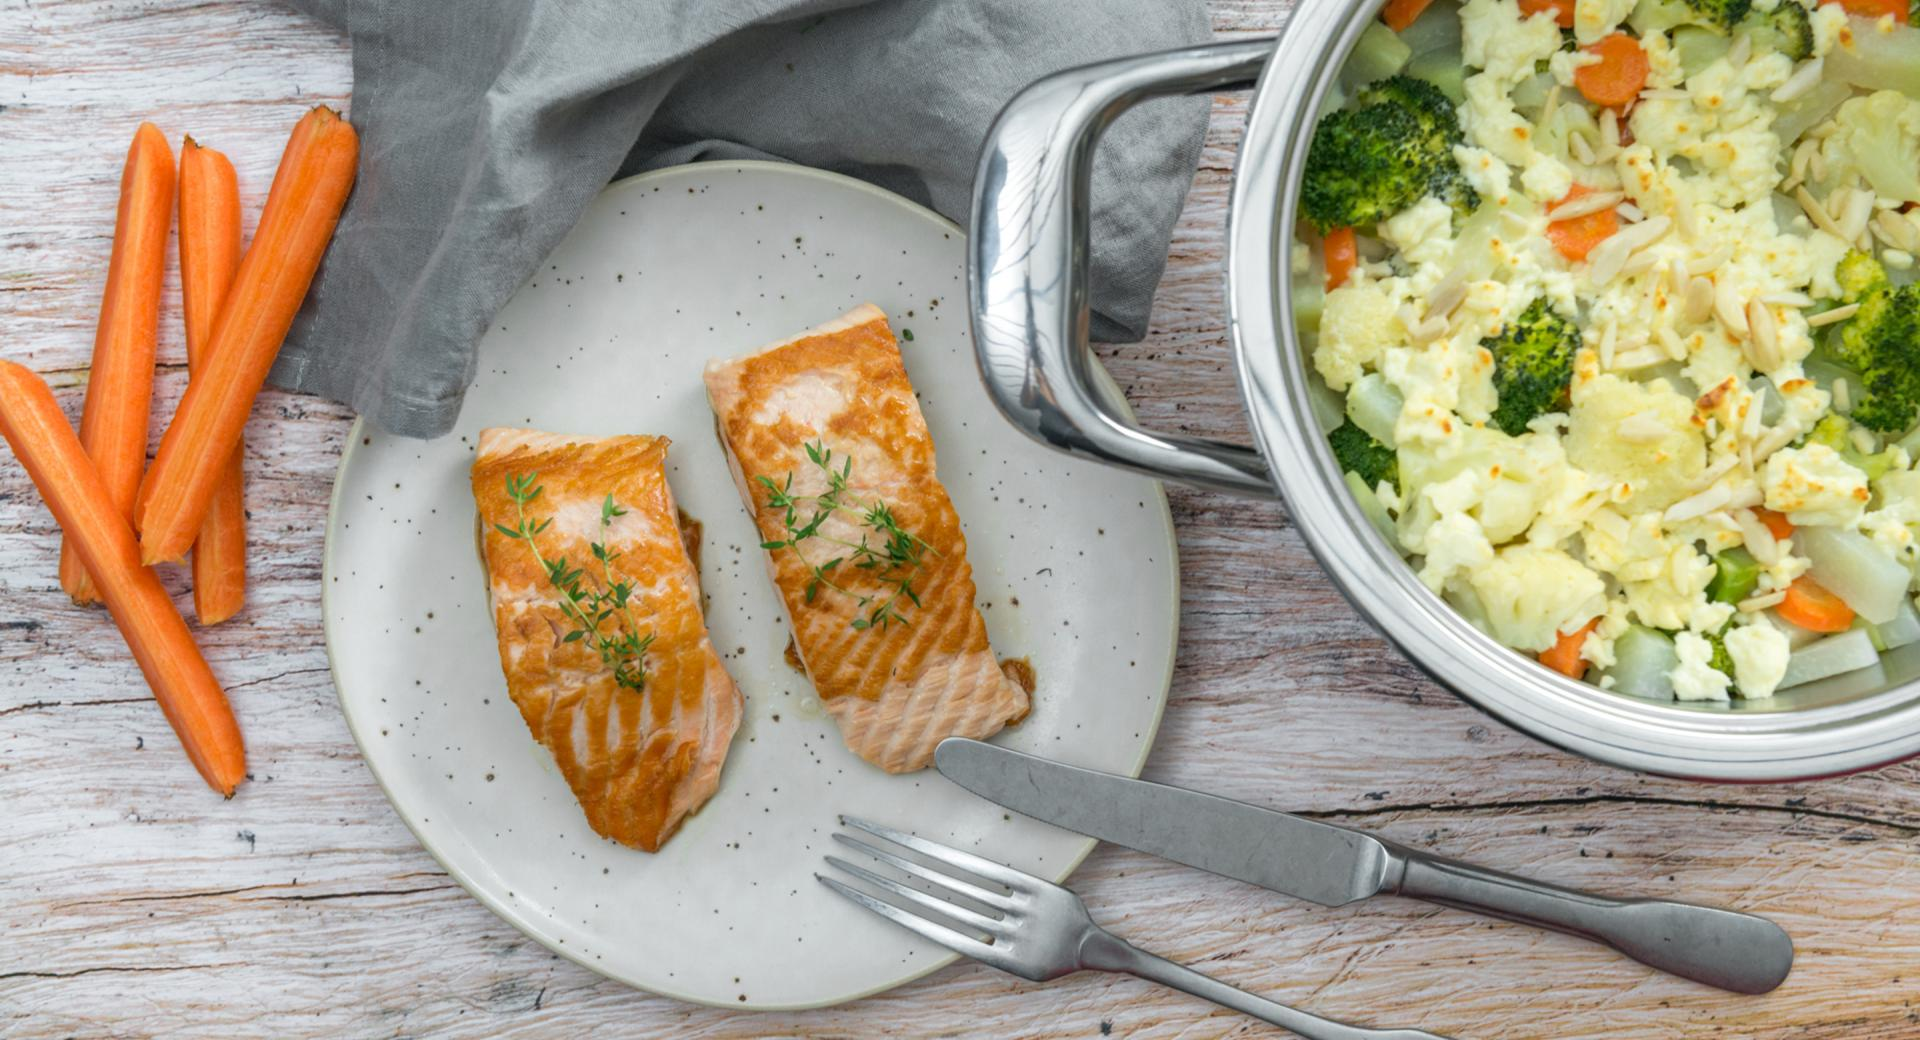 Salmon fillet with gratinated seasonal vegetables